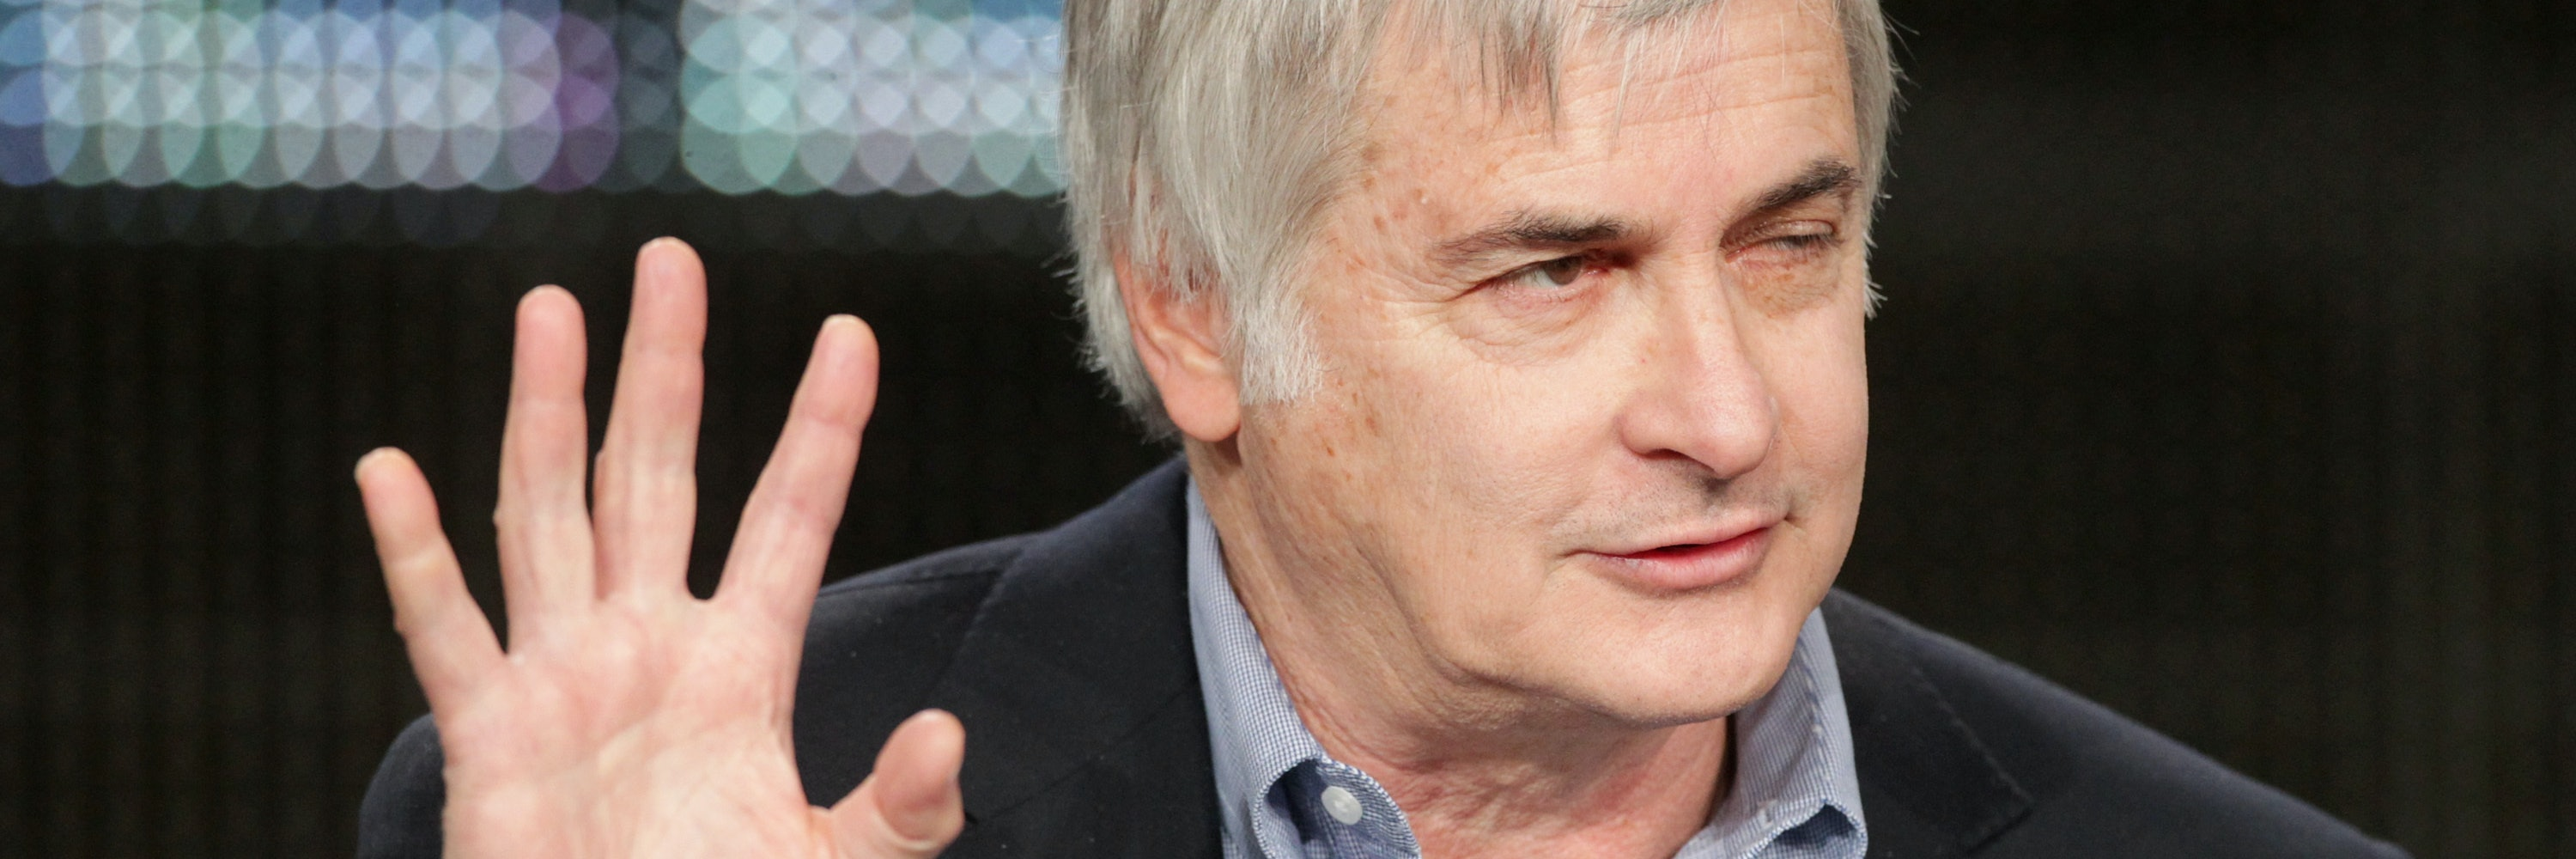 Seth Shostak, senior astronomer at the SETI Institute, weighed in on the possibility of intelligent life in the TRAPPIST-1 system.